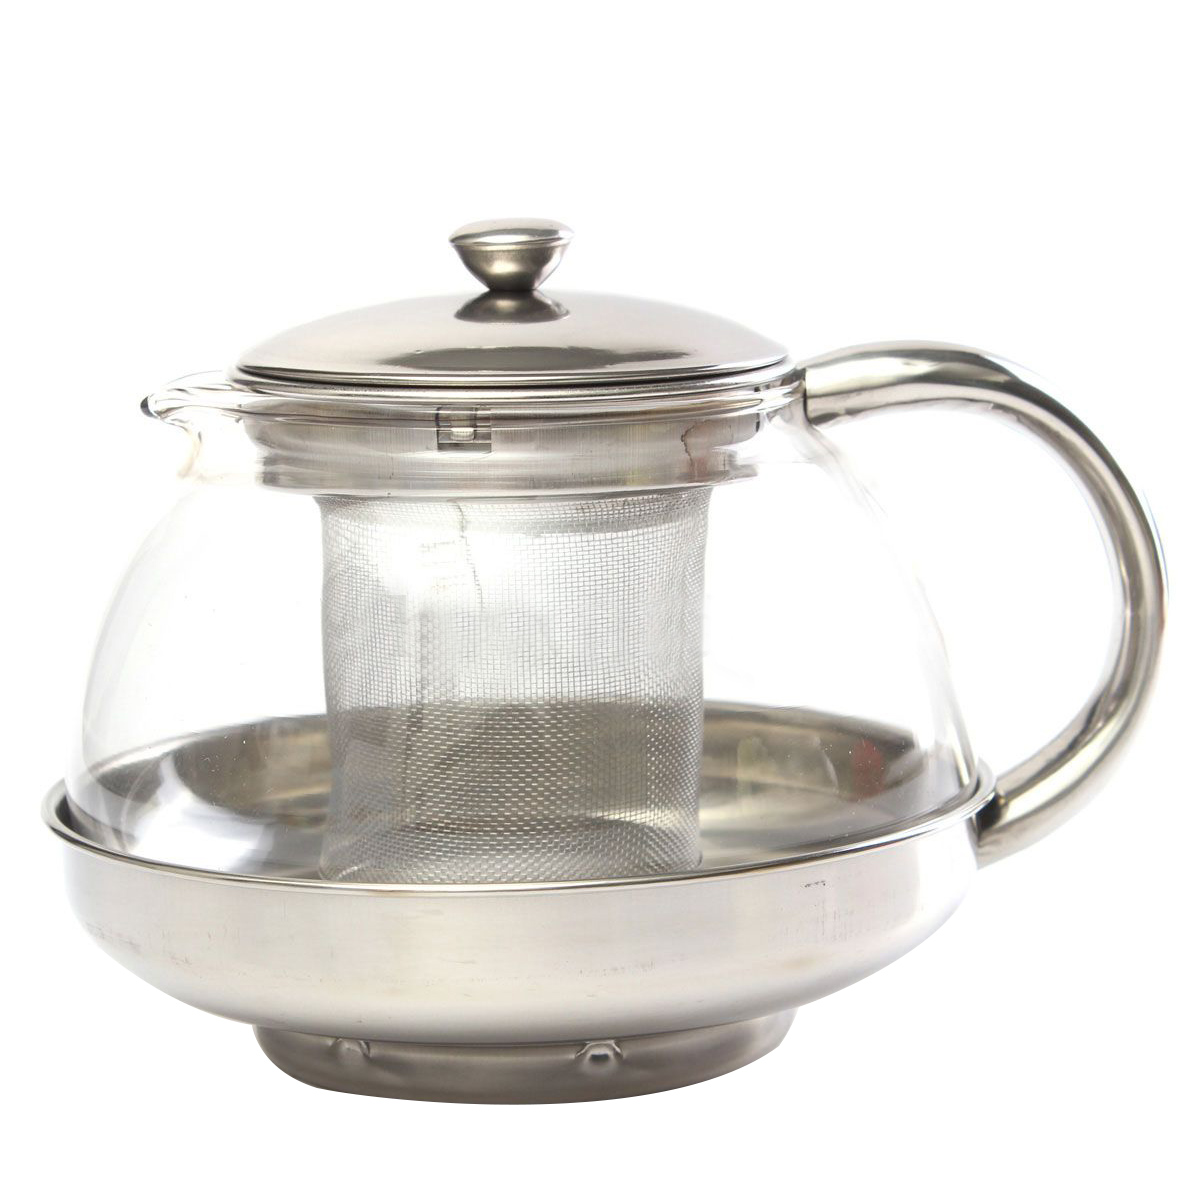 800ml Stainless Glass Teapot Loose Infuser Coffee Tea Leaf Herbal Decor impact of wind energy on reactive power and voltage control